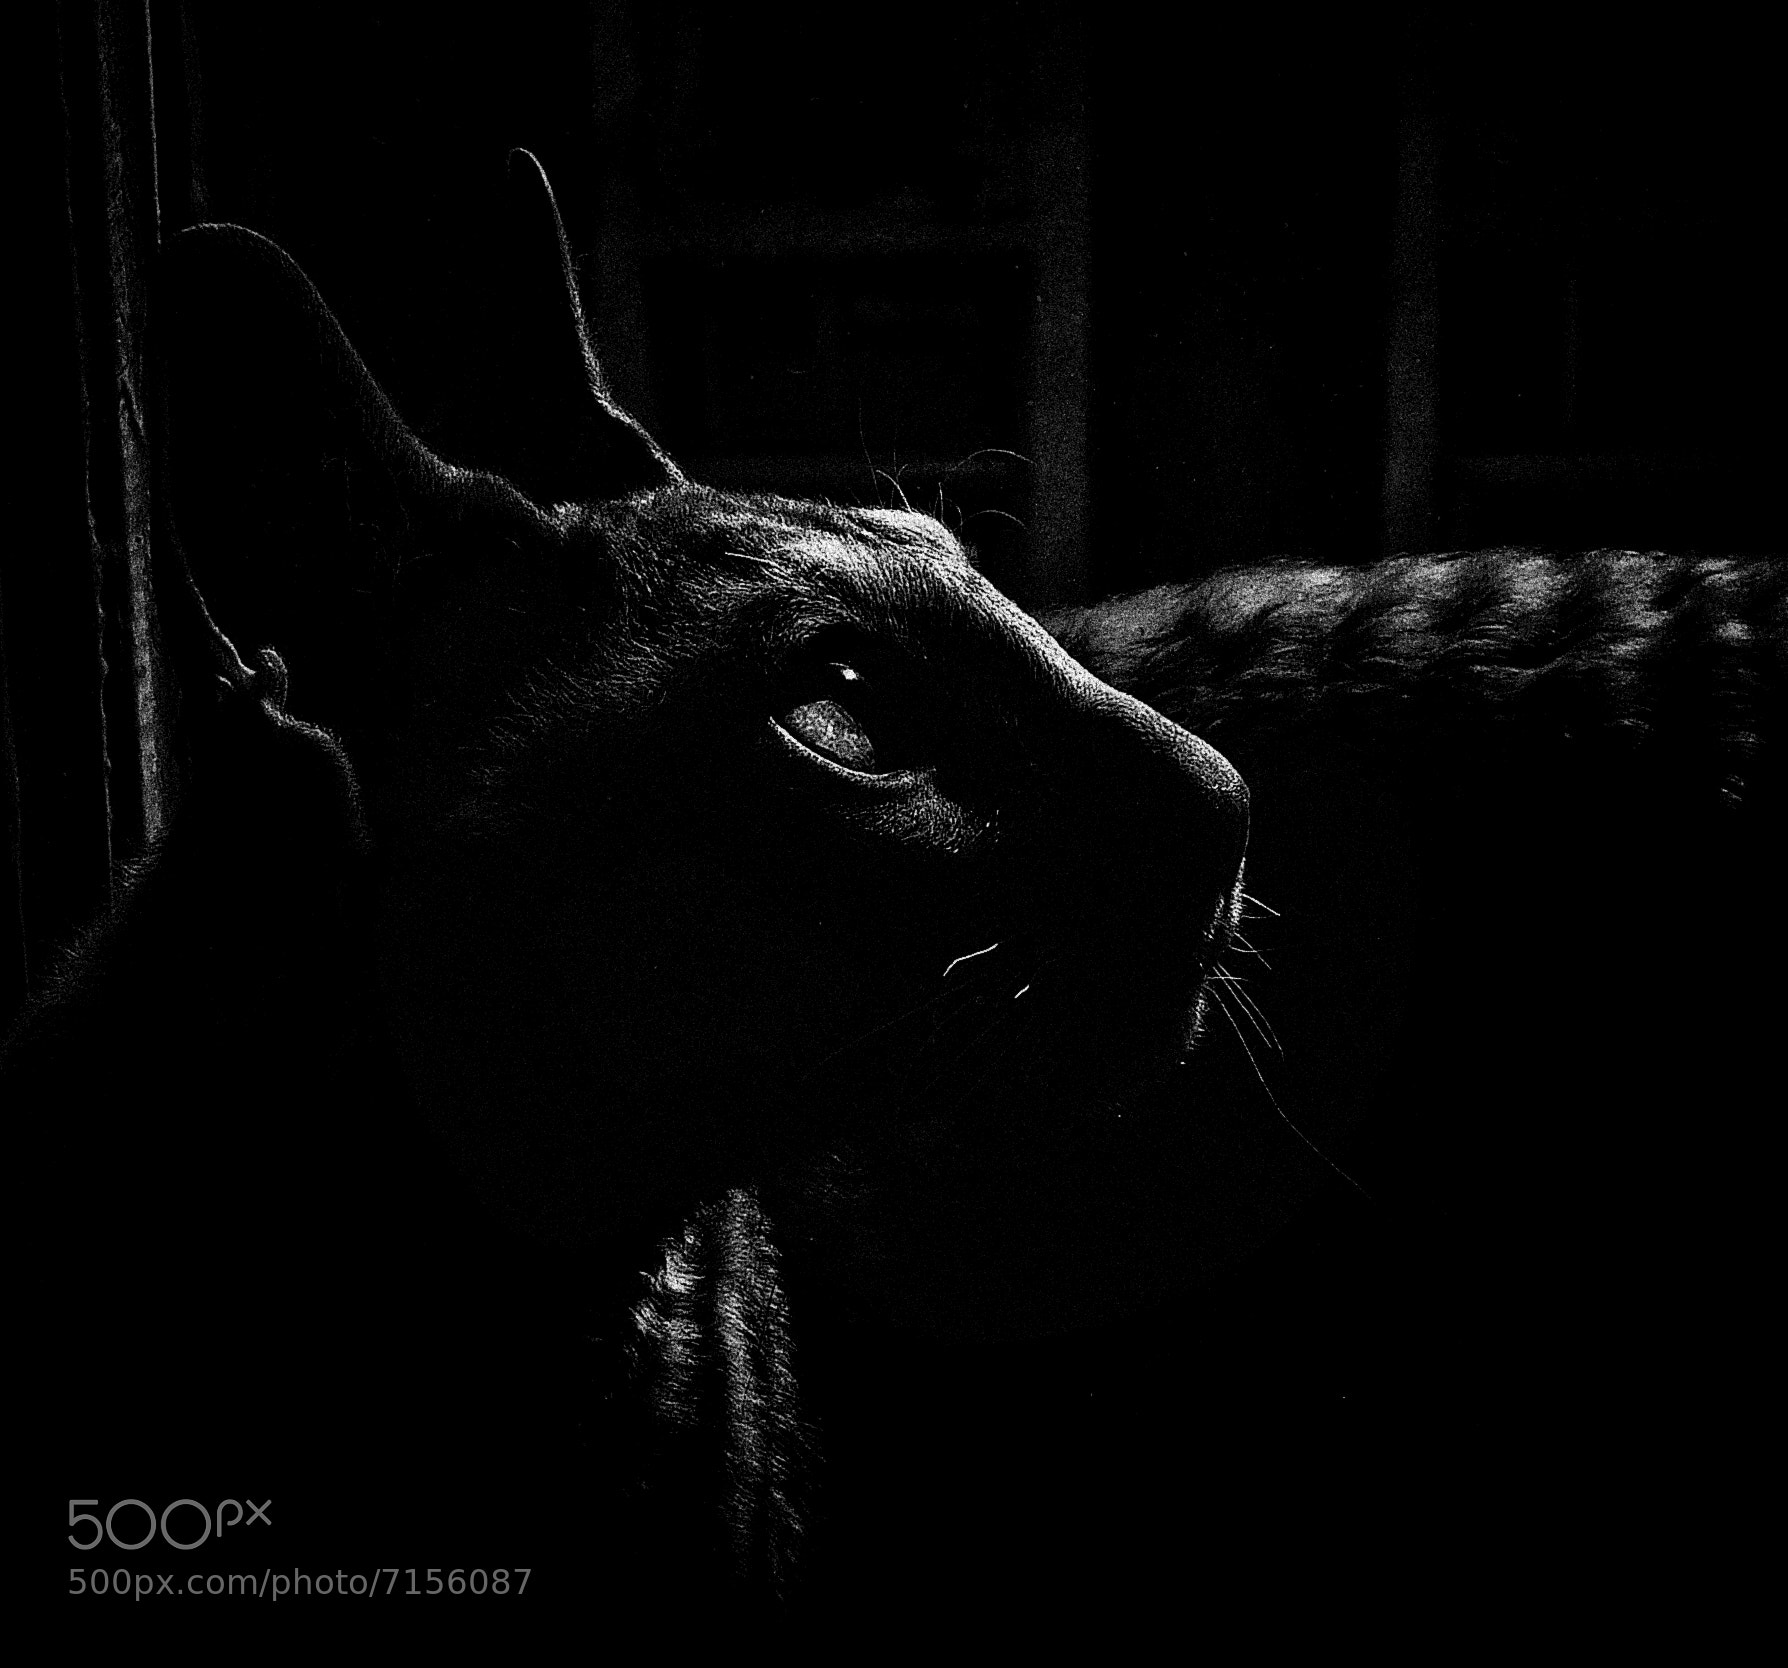 Photograph His name - Sheltn Small Magiс Bast  (limited edition fine art prints available) by Key GROSS (Konstantin Smirnov) on 500px